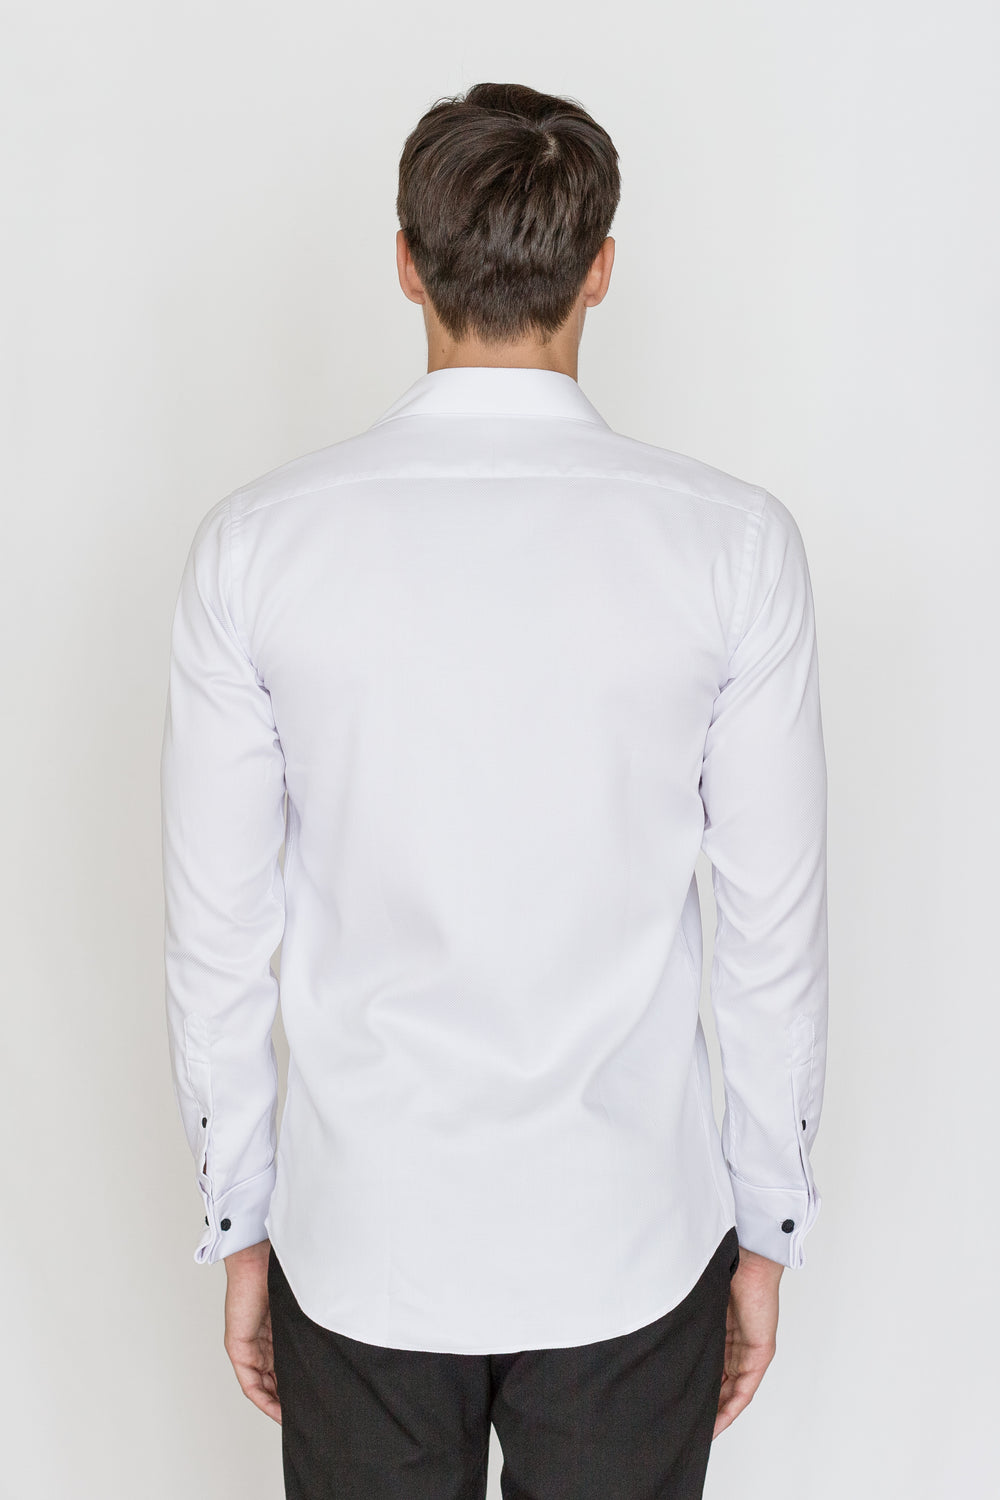 Mason Ward Skara White Pearl Tuxedo Style Slim Fit/ Double Cuff Shirt